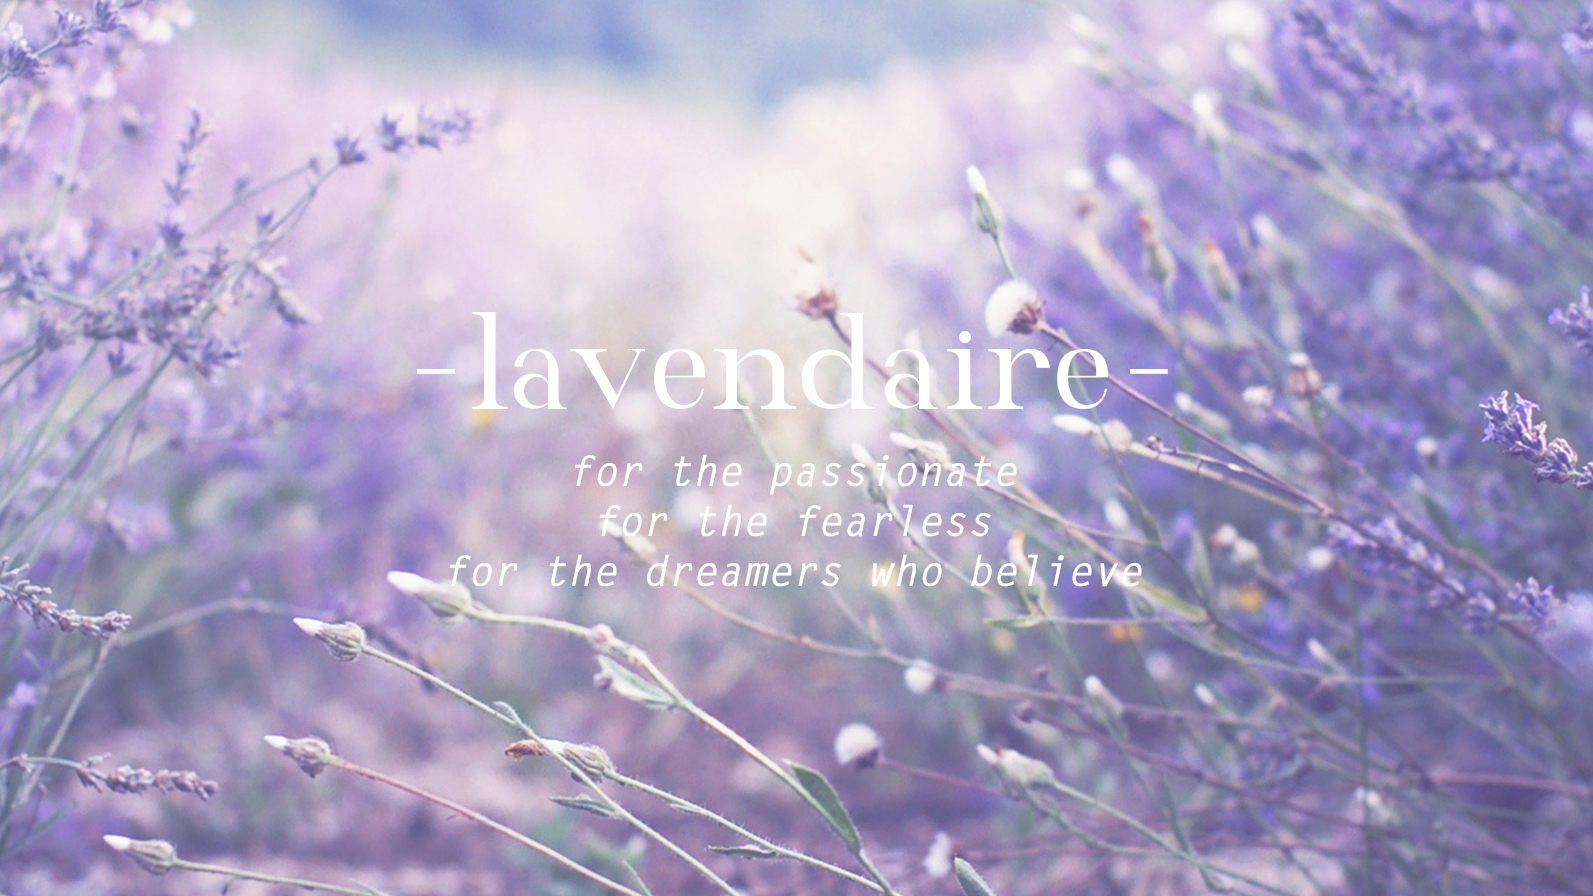 Welcome to Lavendaire